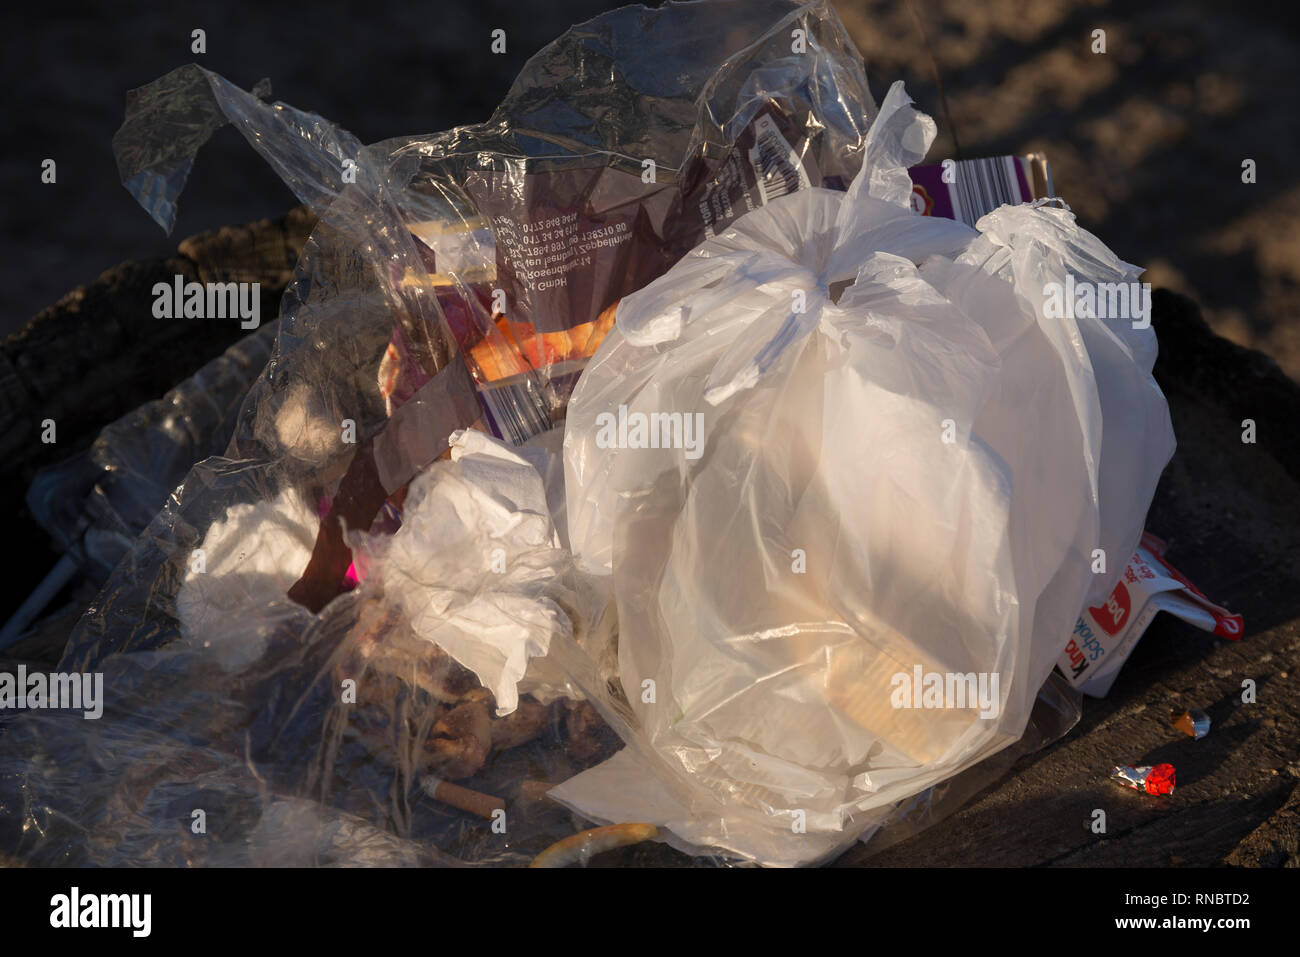 Plastic Pollution - Stock Image